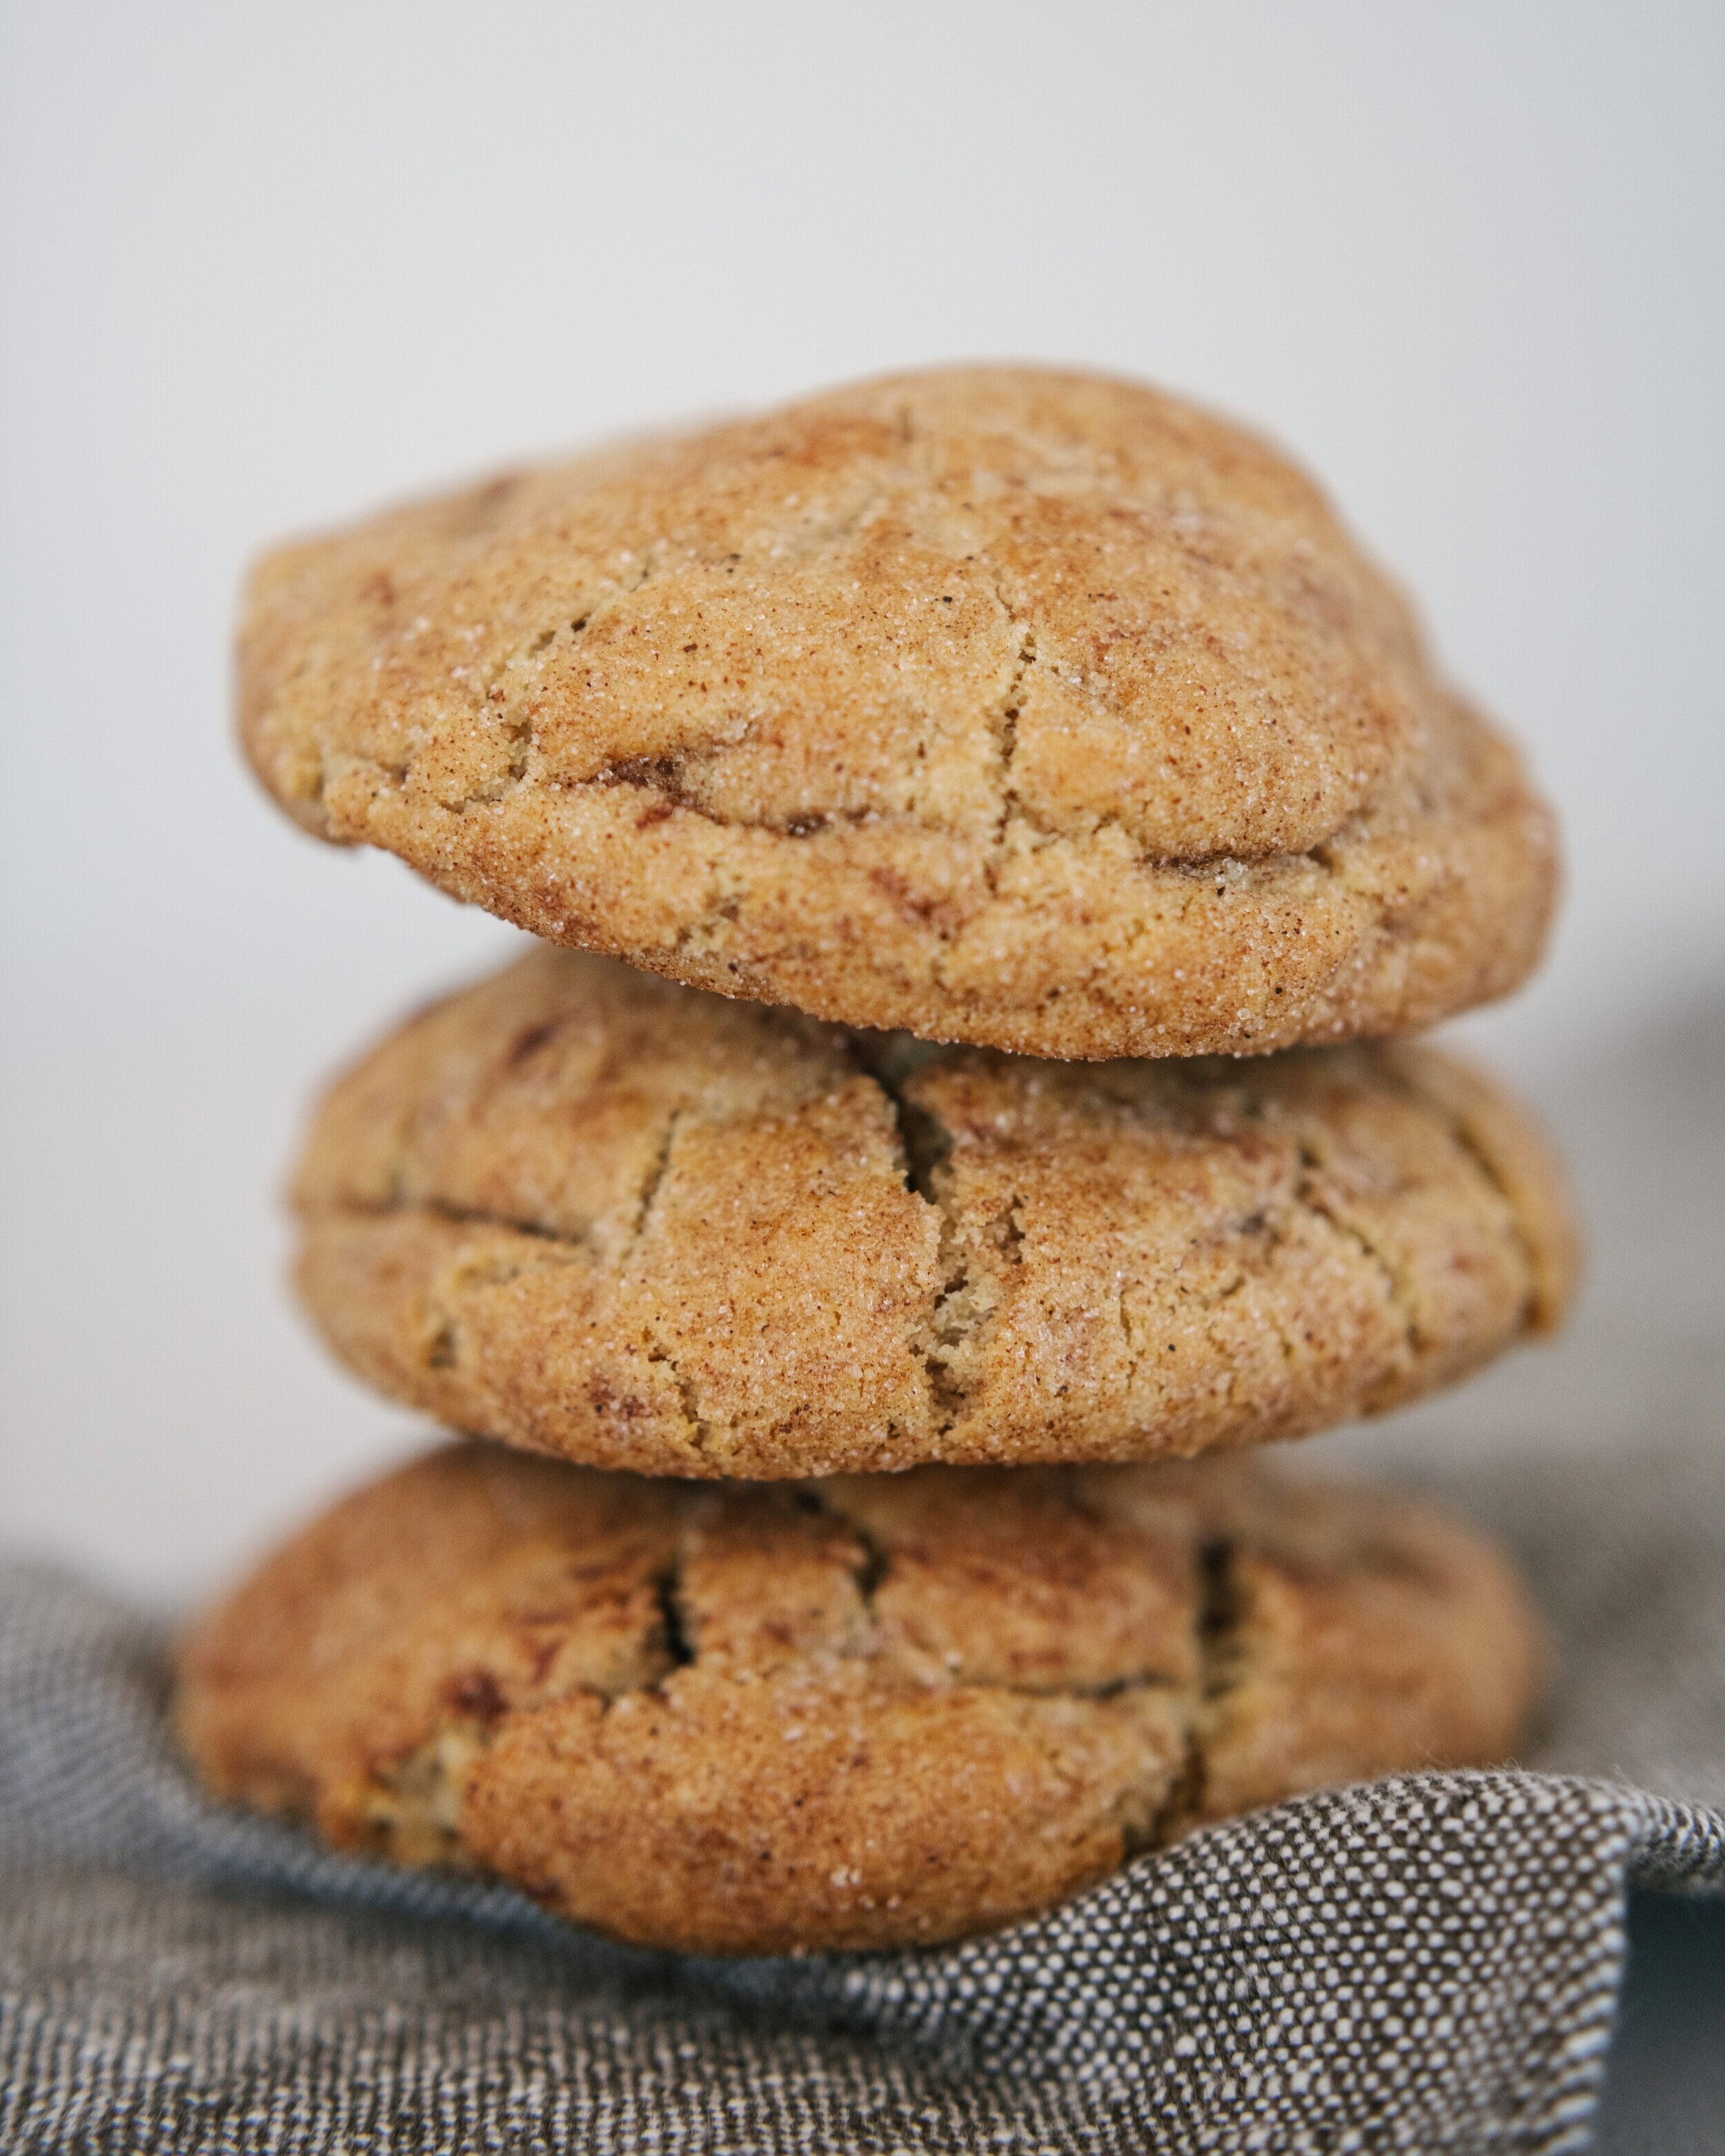 Big CinnaJon - This snickerdoodle inspired cookie comes with homemade cinnamon chips that burst during baking to leave incredible cinnamon pockets to create the perfect balance of warm, sweet, and cinnamon. Named for a huge inspiration to our operation, the late Jon M Huntsman, who taught us the value of giving back.